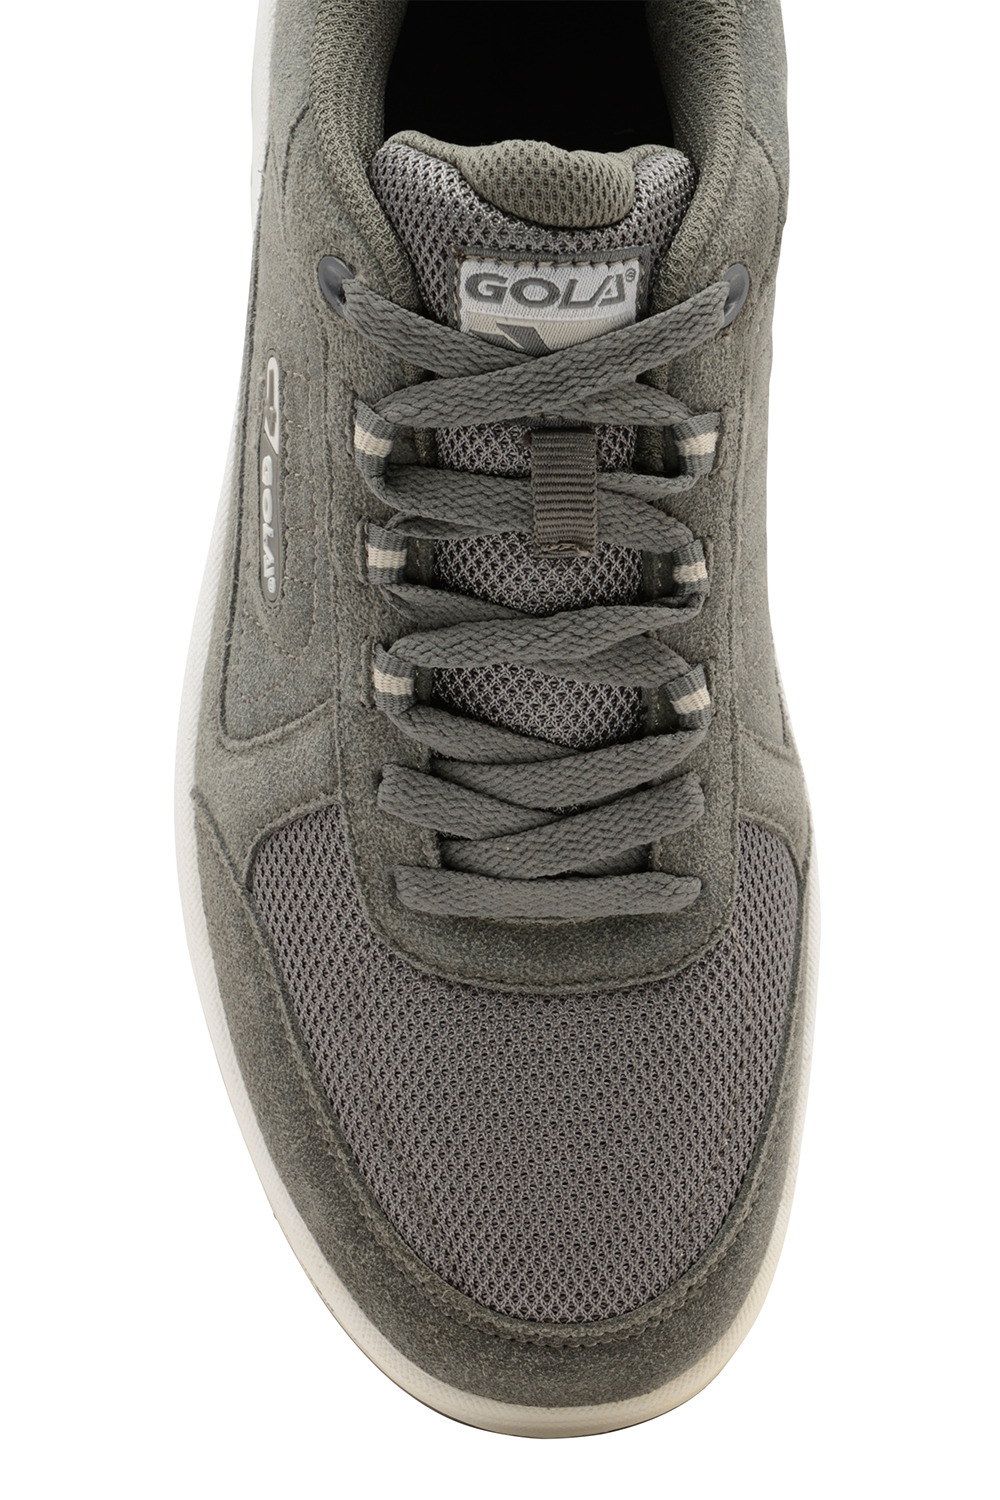 thumbnail 7 - Mens Gola Belmont Wide EE Fit Suede Sports Shoes Lace Up Non-Mark Sole Trainers